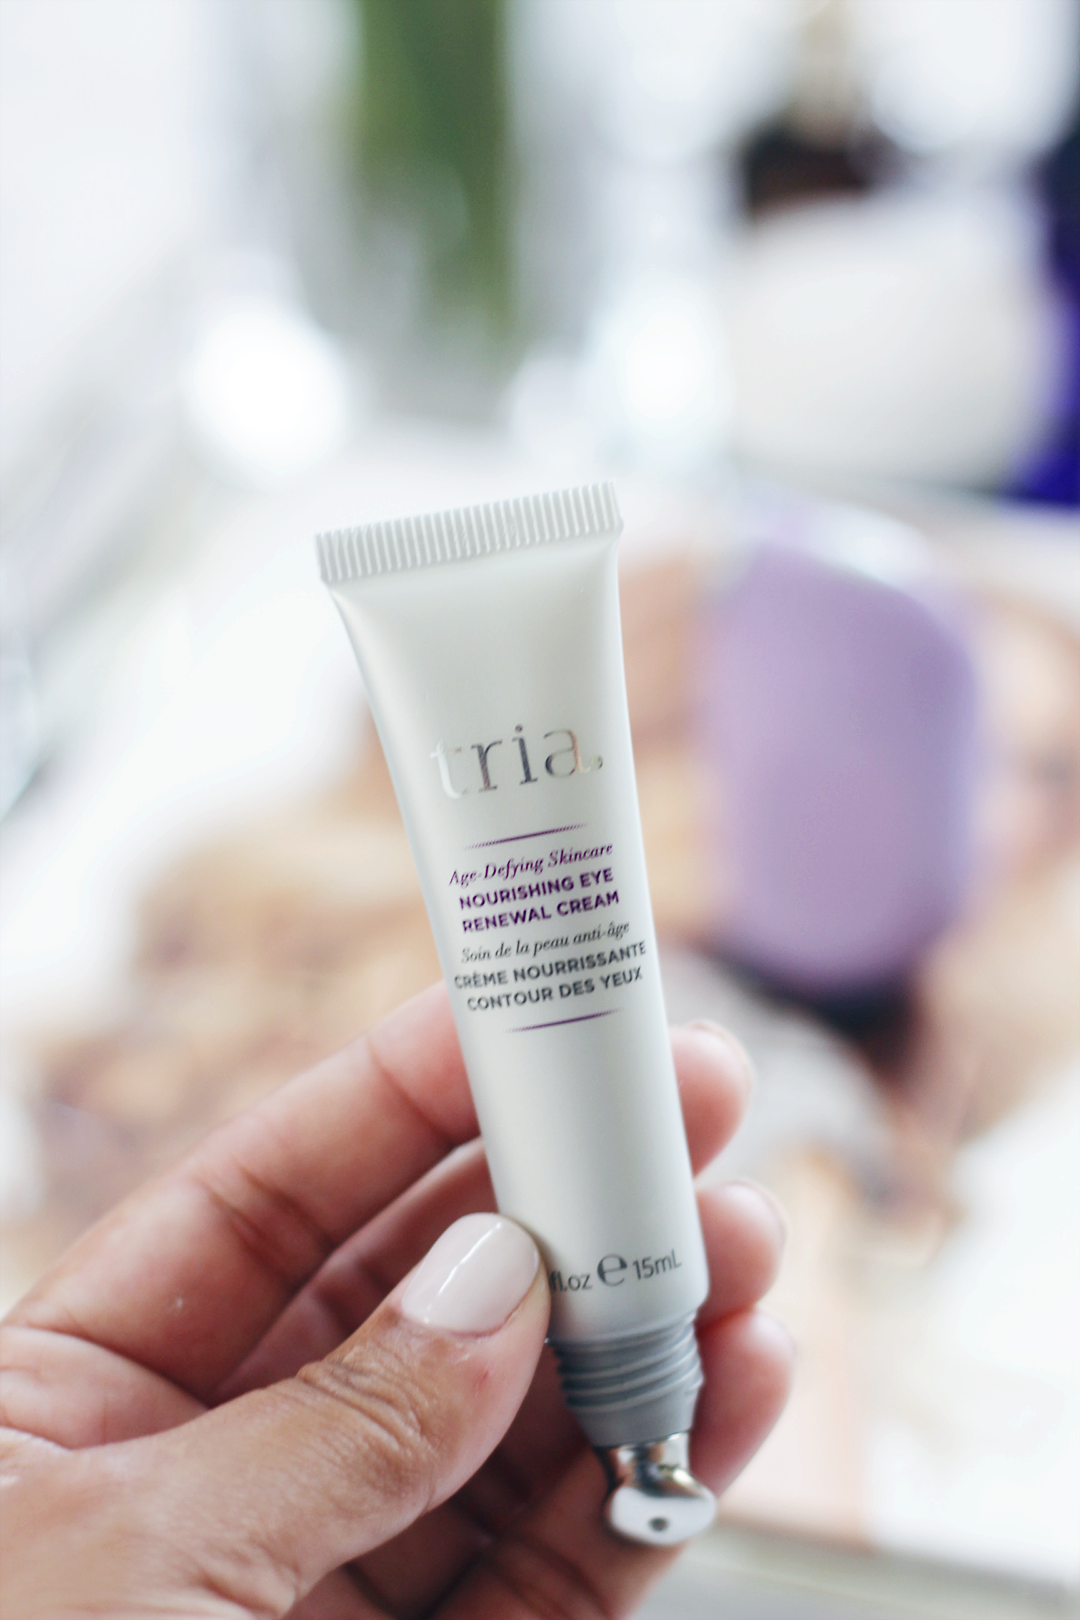 TRIA Age-Defying Eye Wrinkle Correcting Laser is helping me turn back time daily with just 2 minutes a day. Keep reading and see how the TRIA Age-Defying Eye Wrinkle Correcting Laser made a difference in just 8 weeks- Makeup Life and Love- Age-Defying Eye Wrinkle Laser-TRIA Beauty